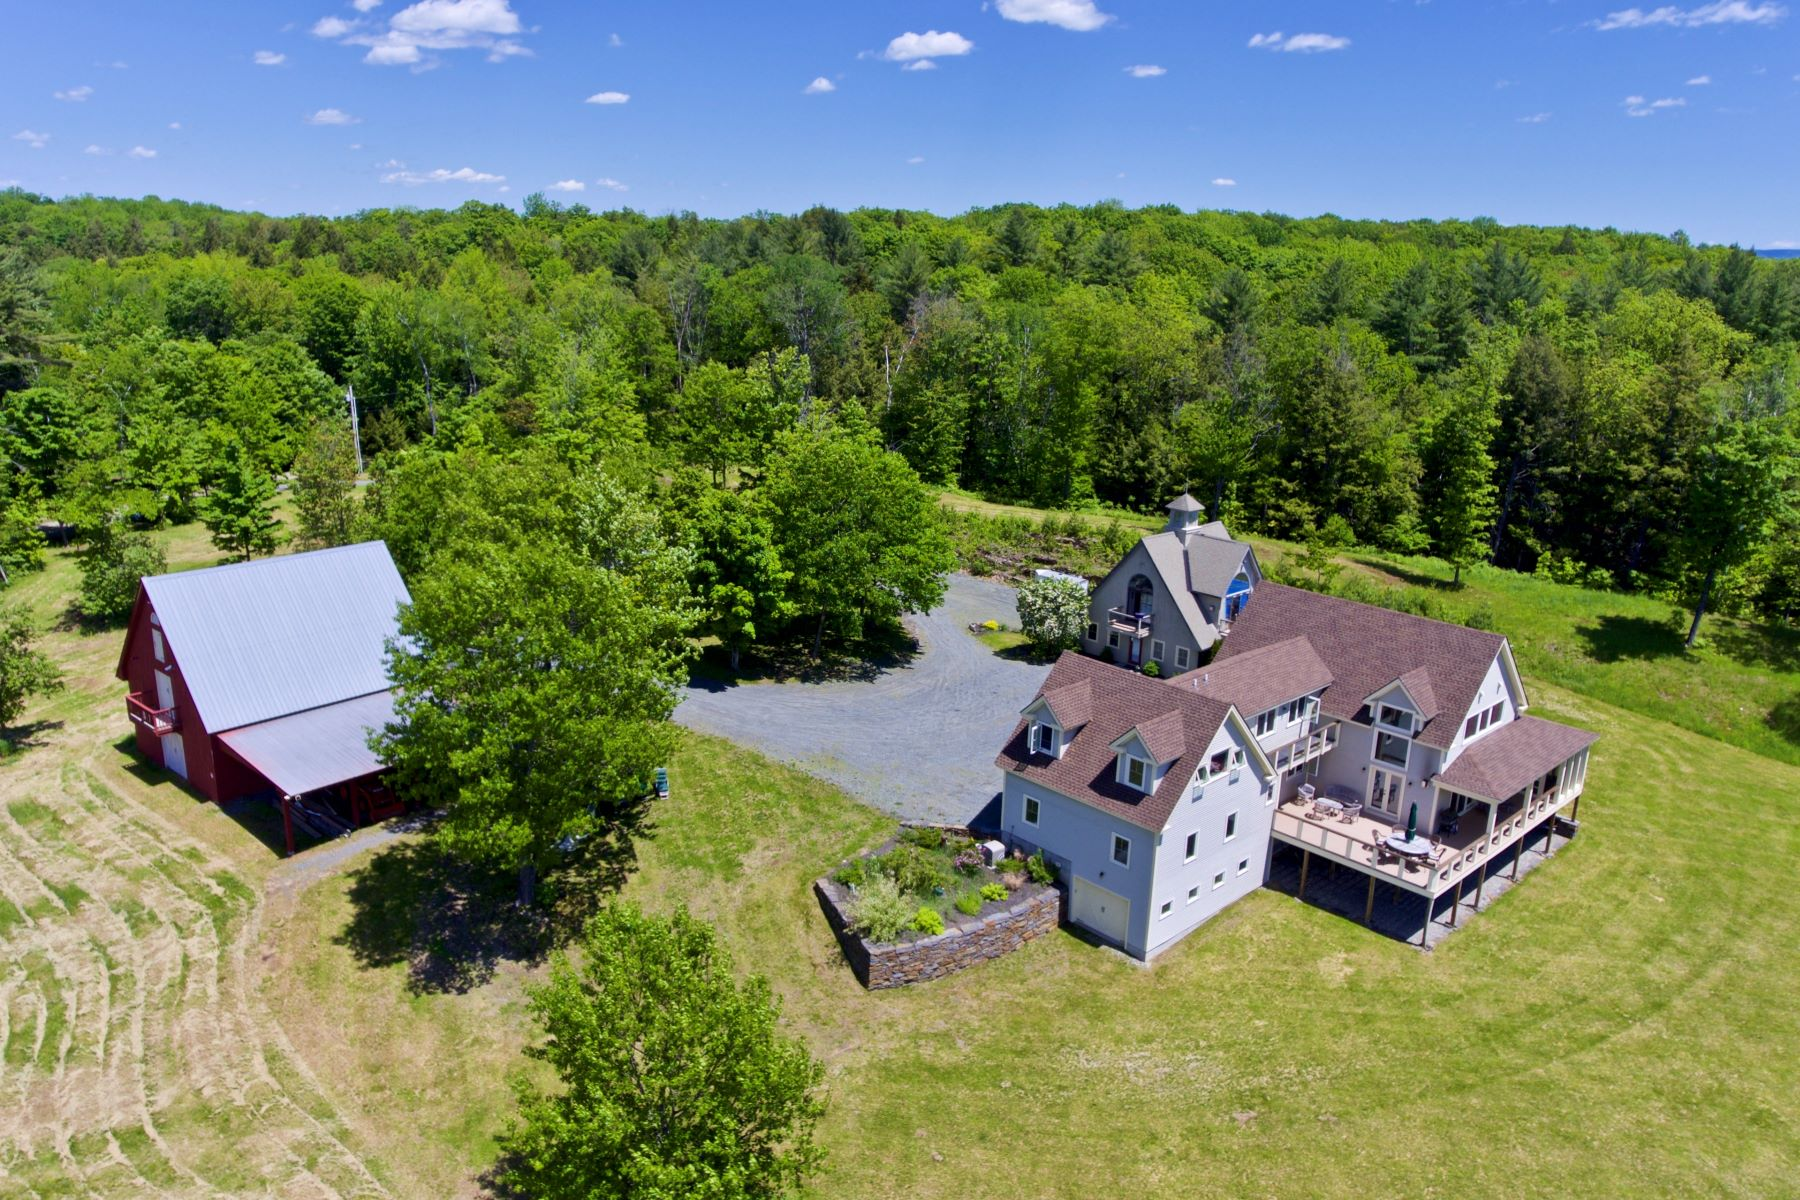 Single Family Homes for Sale at 38 Tinkham Hill Road Hartland, Vermont 05048 United States